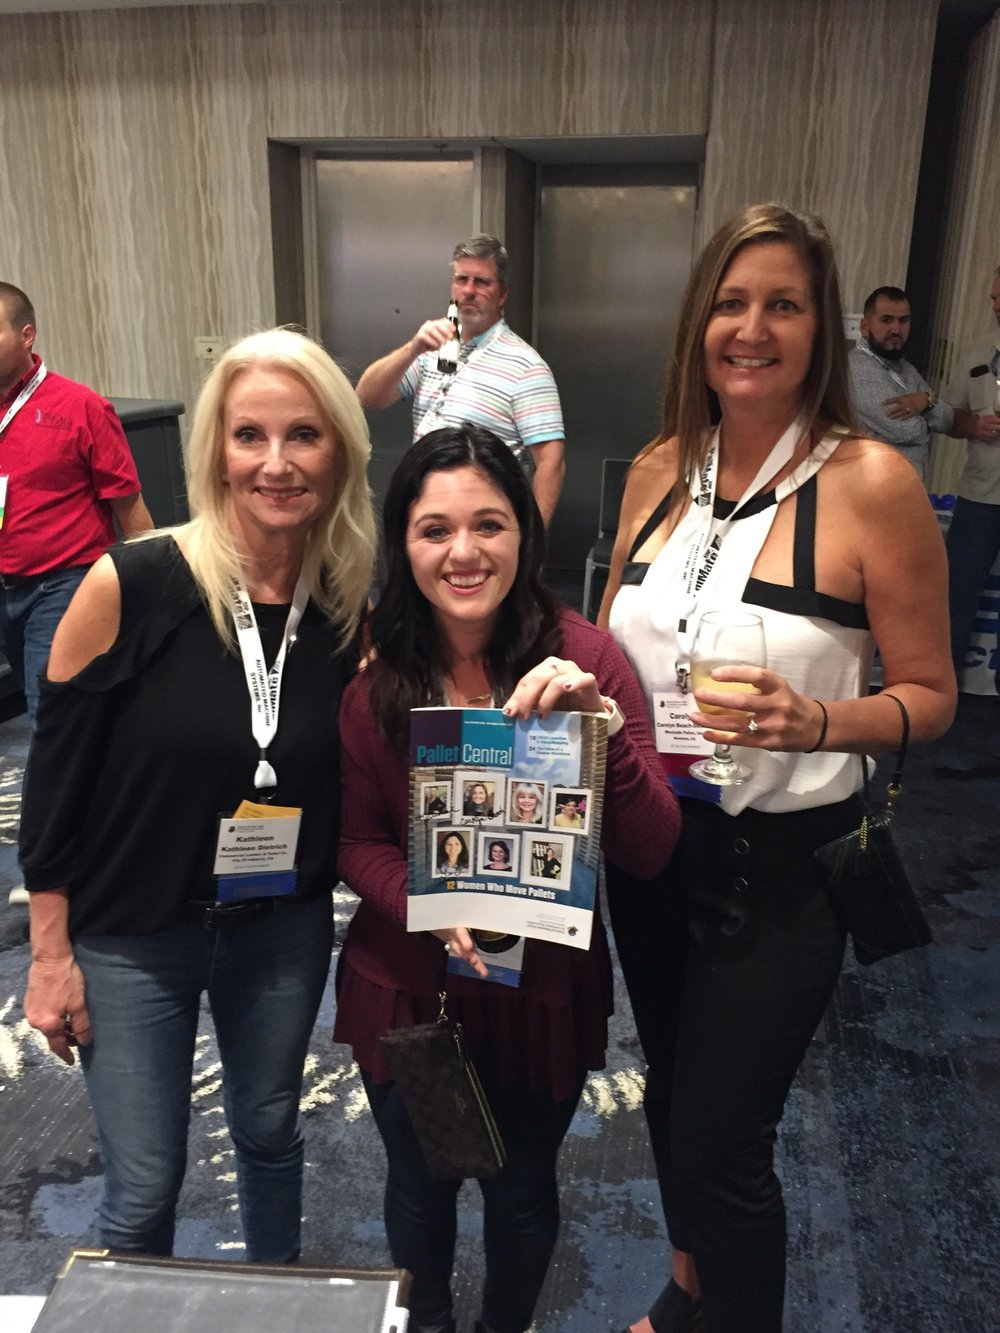 L to R: Kathleen Dietrich of Commercial Lumber/Priority Pallet, Lindsey Shean, Carolyn Beach-Skinner of Westside Pallet